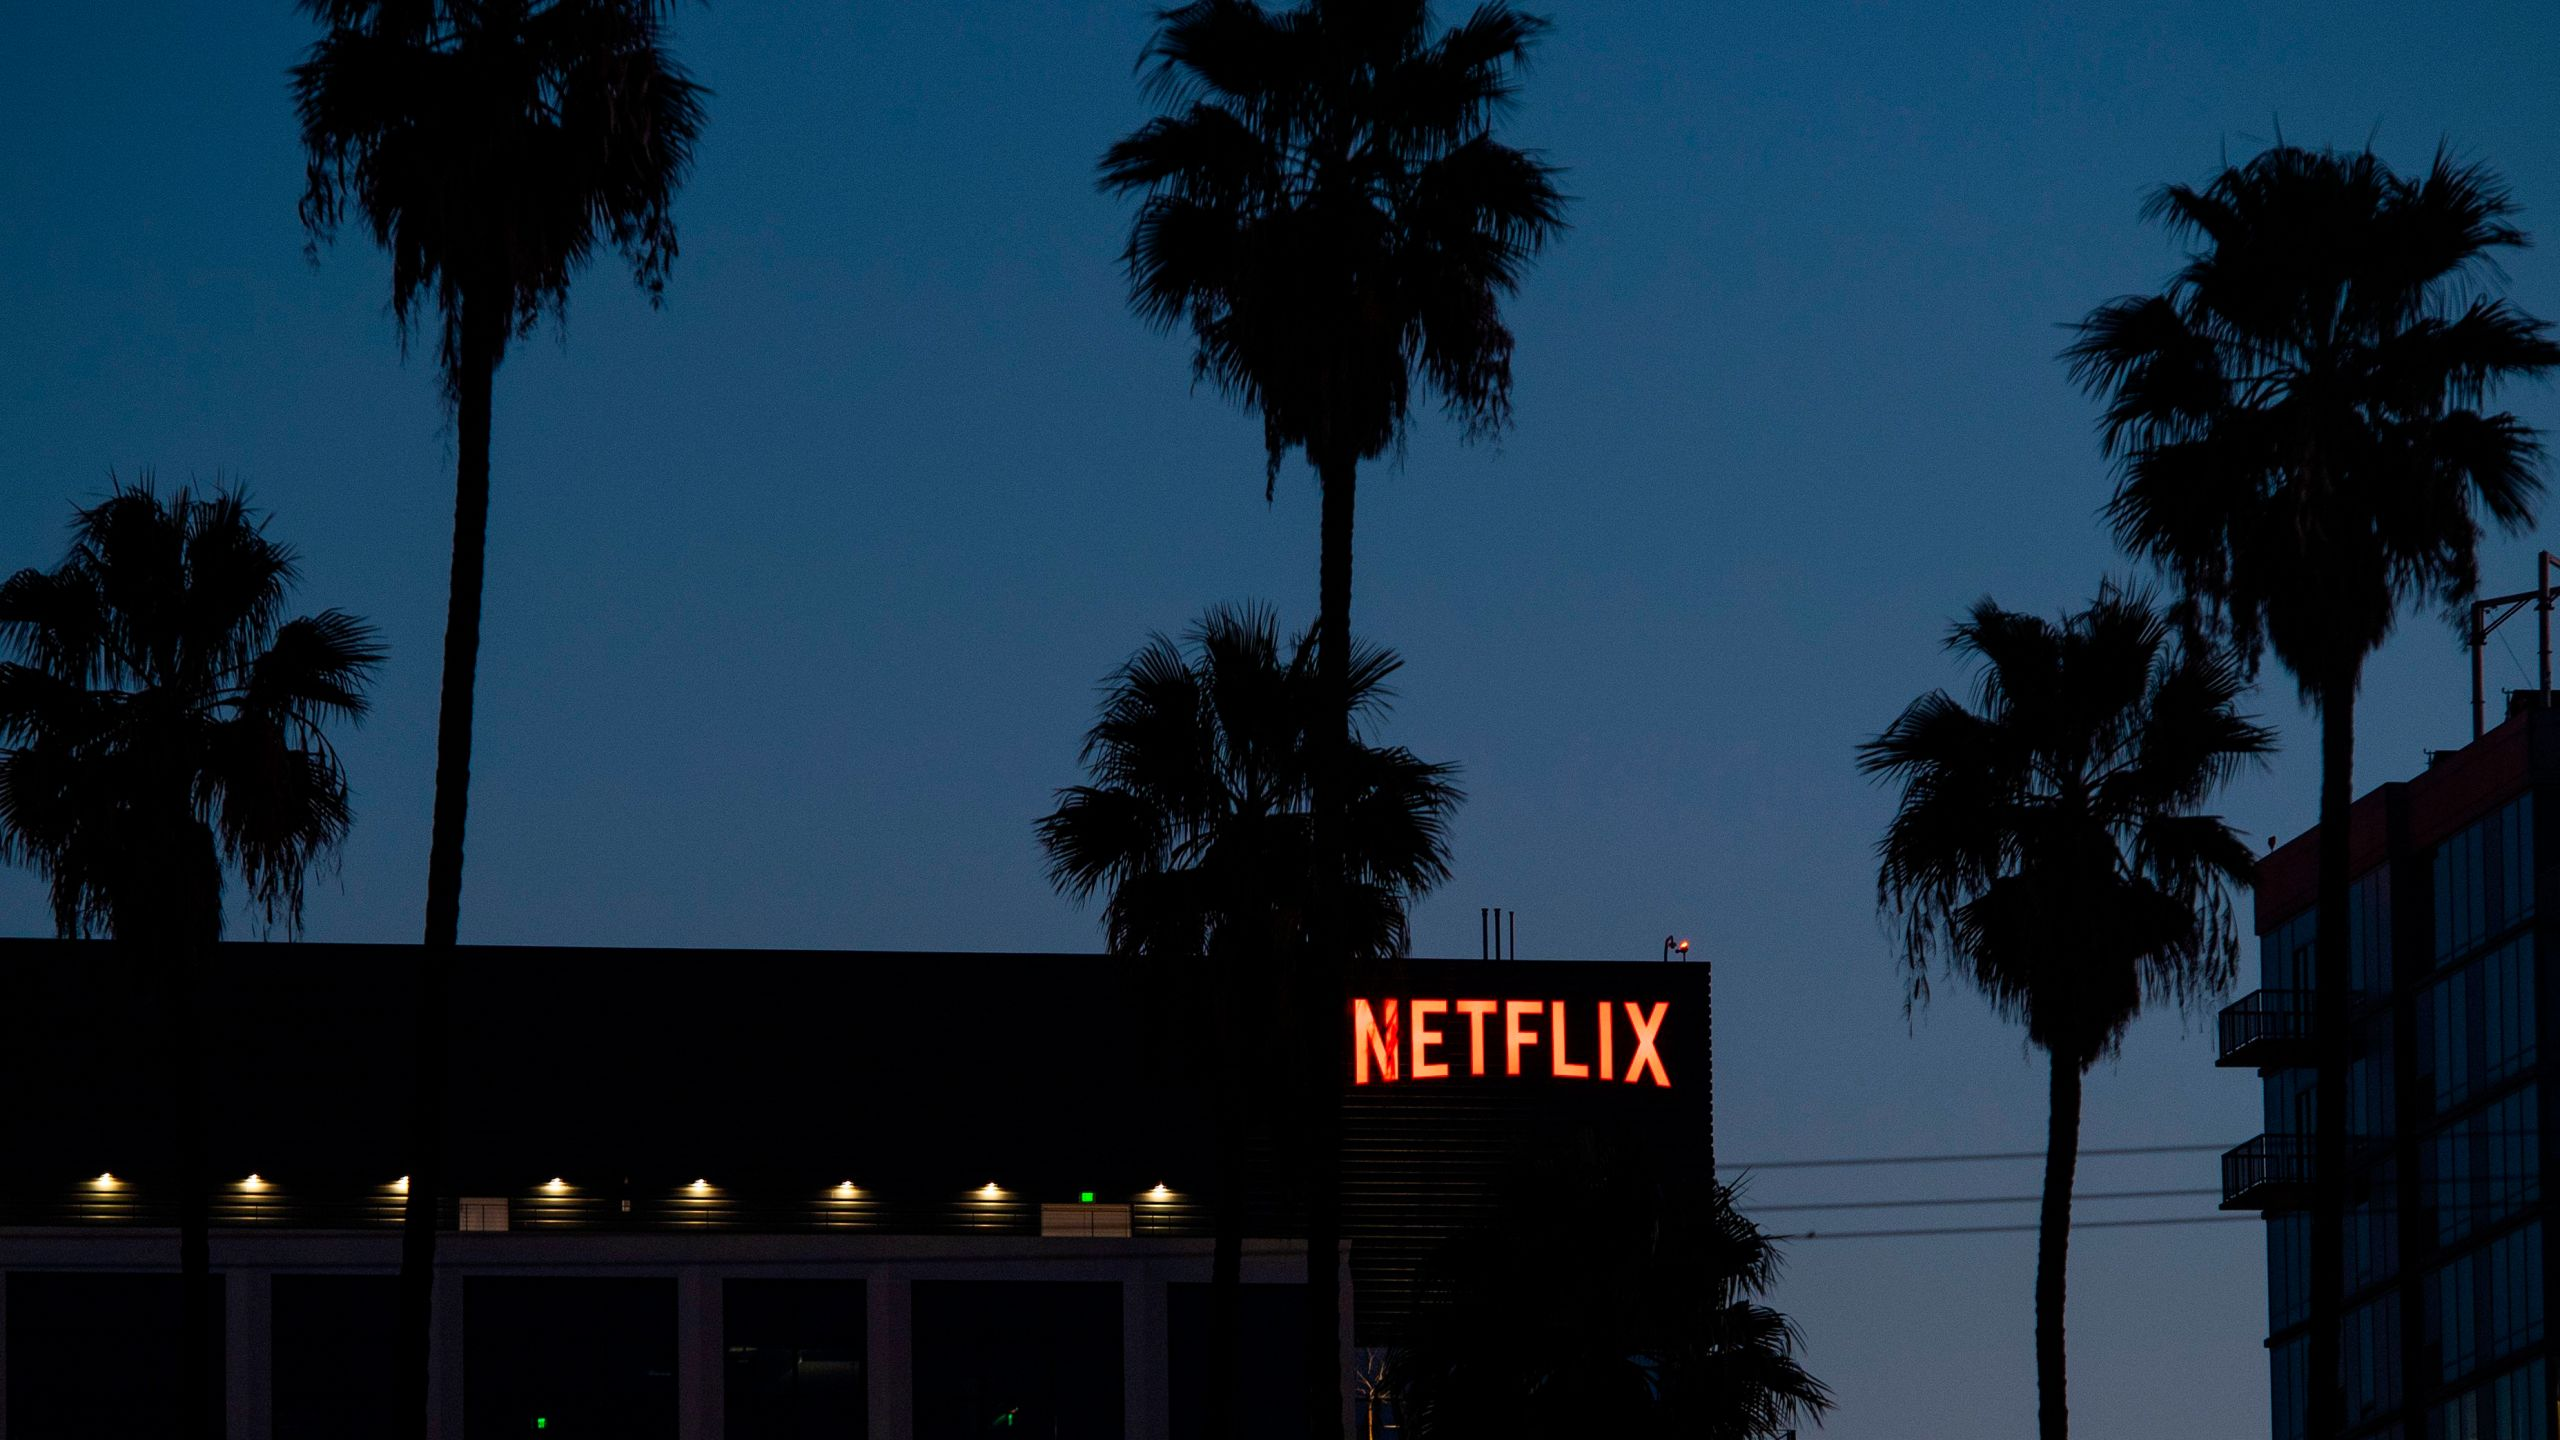 The Netflix logo sign is seen on top of its office building on Feb. 4, 2021 in Hollywood, California. (VALERIE MACON/AFP via Getty Images)